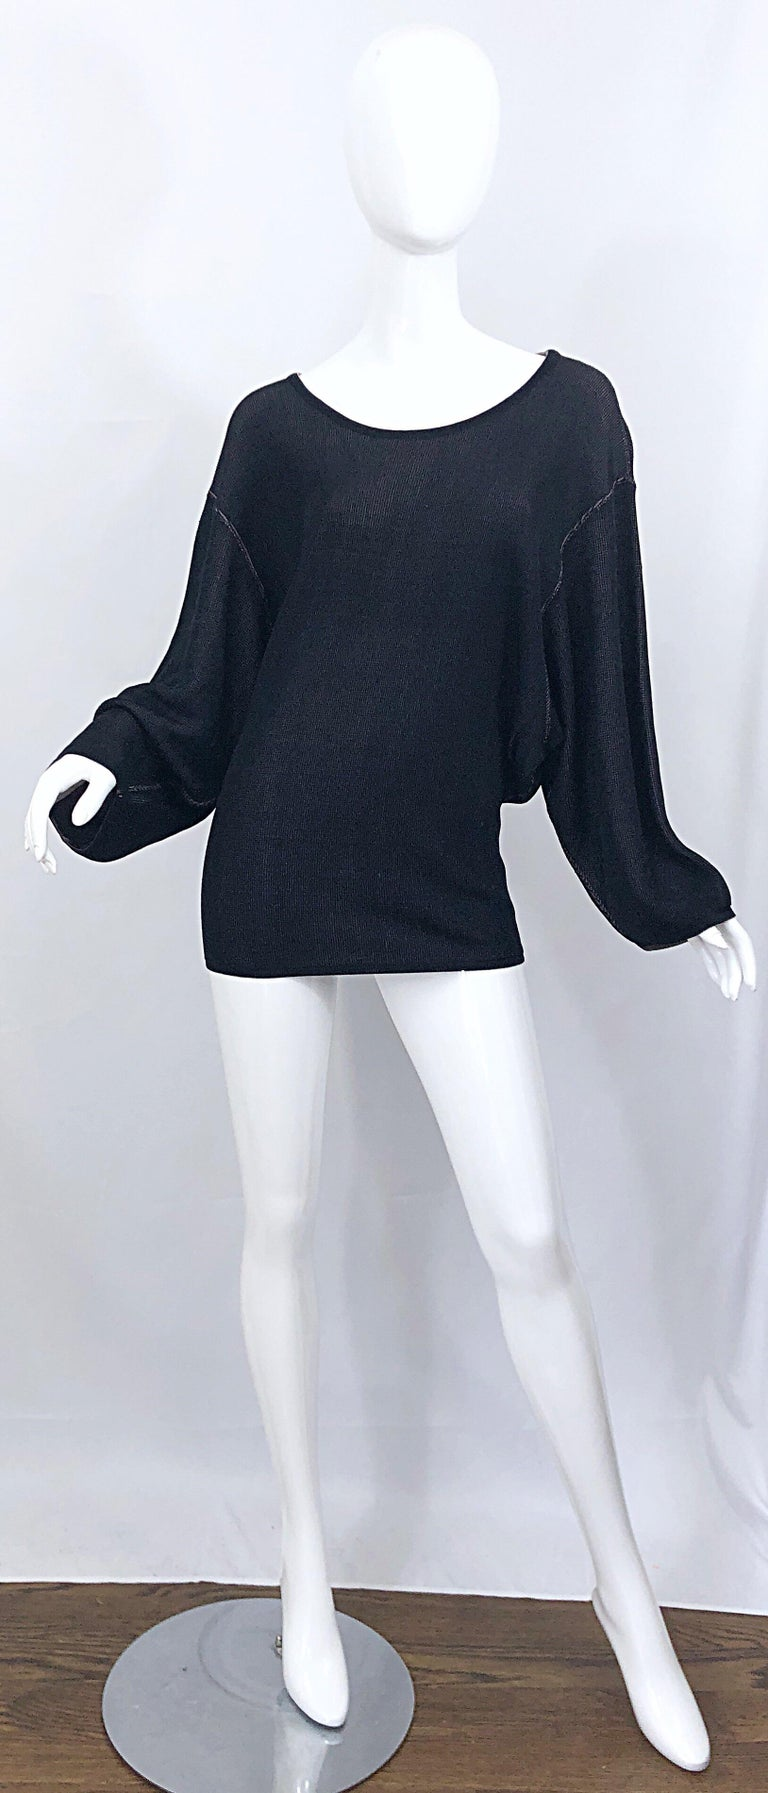 Sexy vintage 1980s AZZEDINE ALAIA black and nude viscose micro mini sweater dress / tunic! Features the most luxurious soft viscose rayon that drapes the body so beautifully. Dolman sleeves will accomodate an array of bust sizes, and skirt is meant